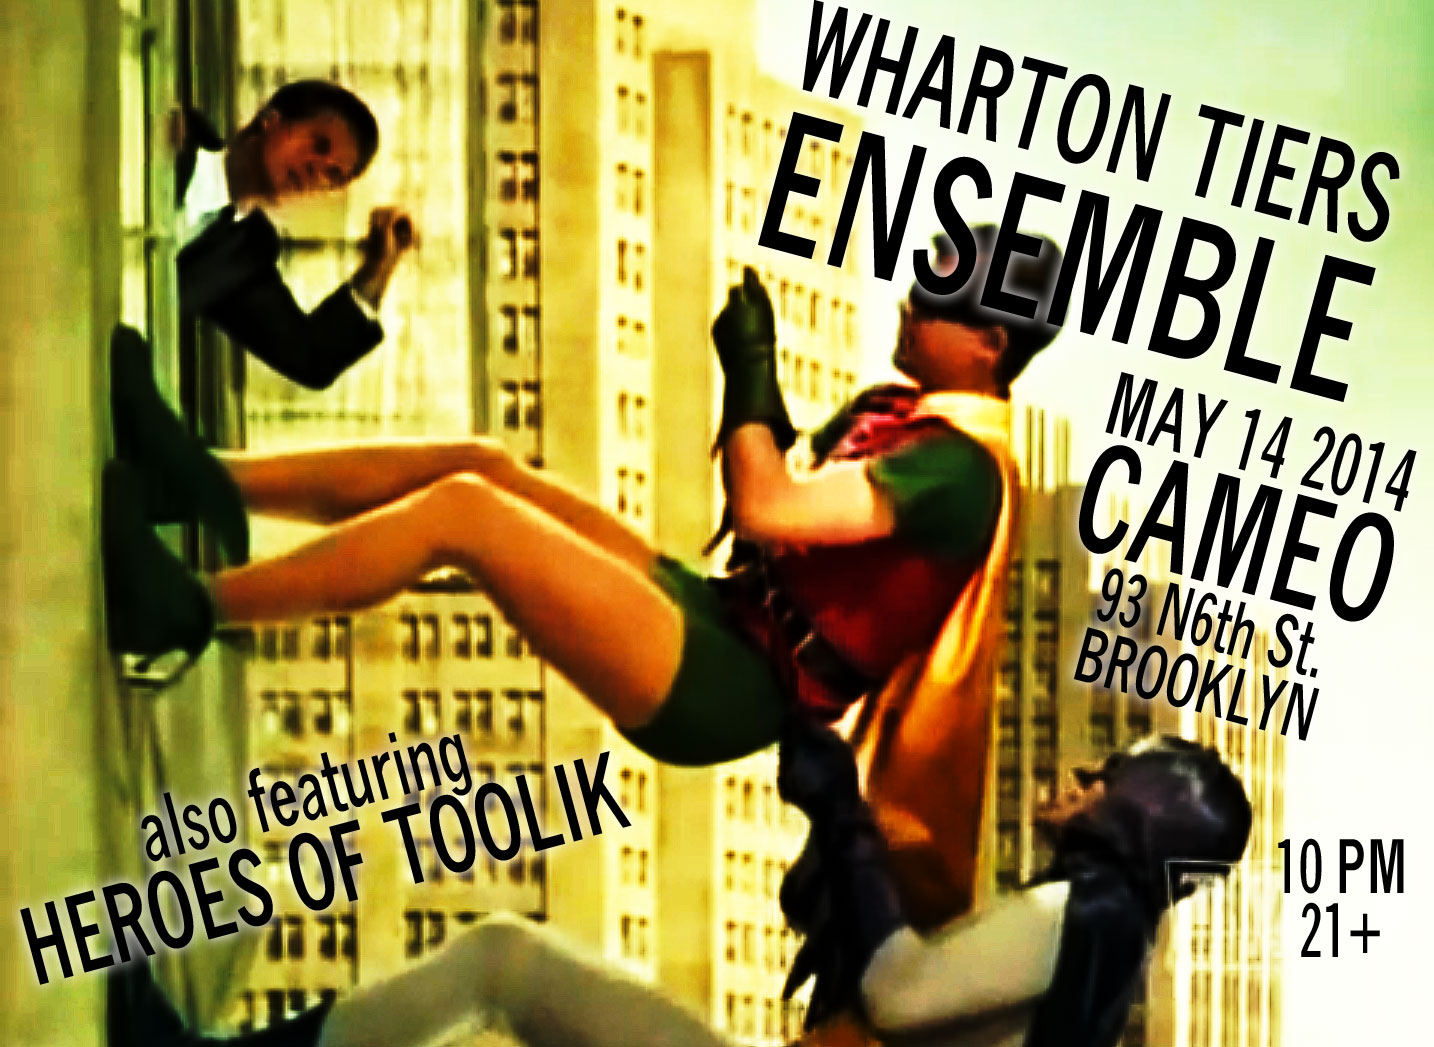 Wharton Tiers Ensemble at Cameo Gallert May 14, 2014